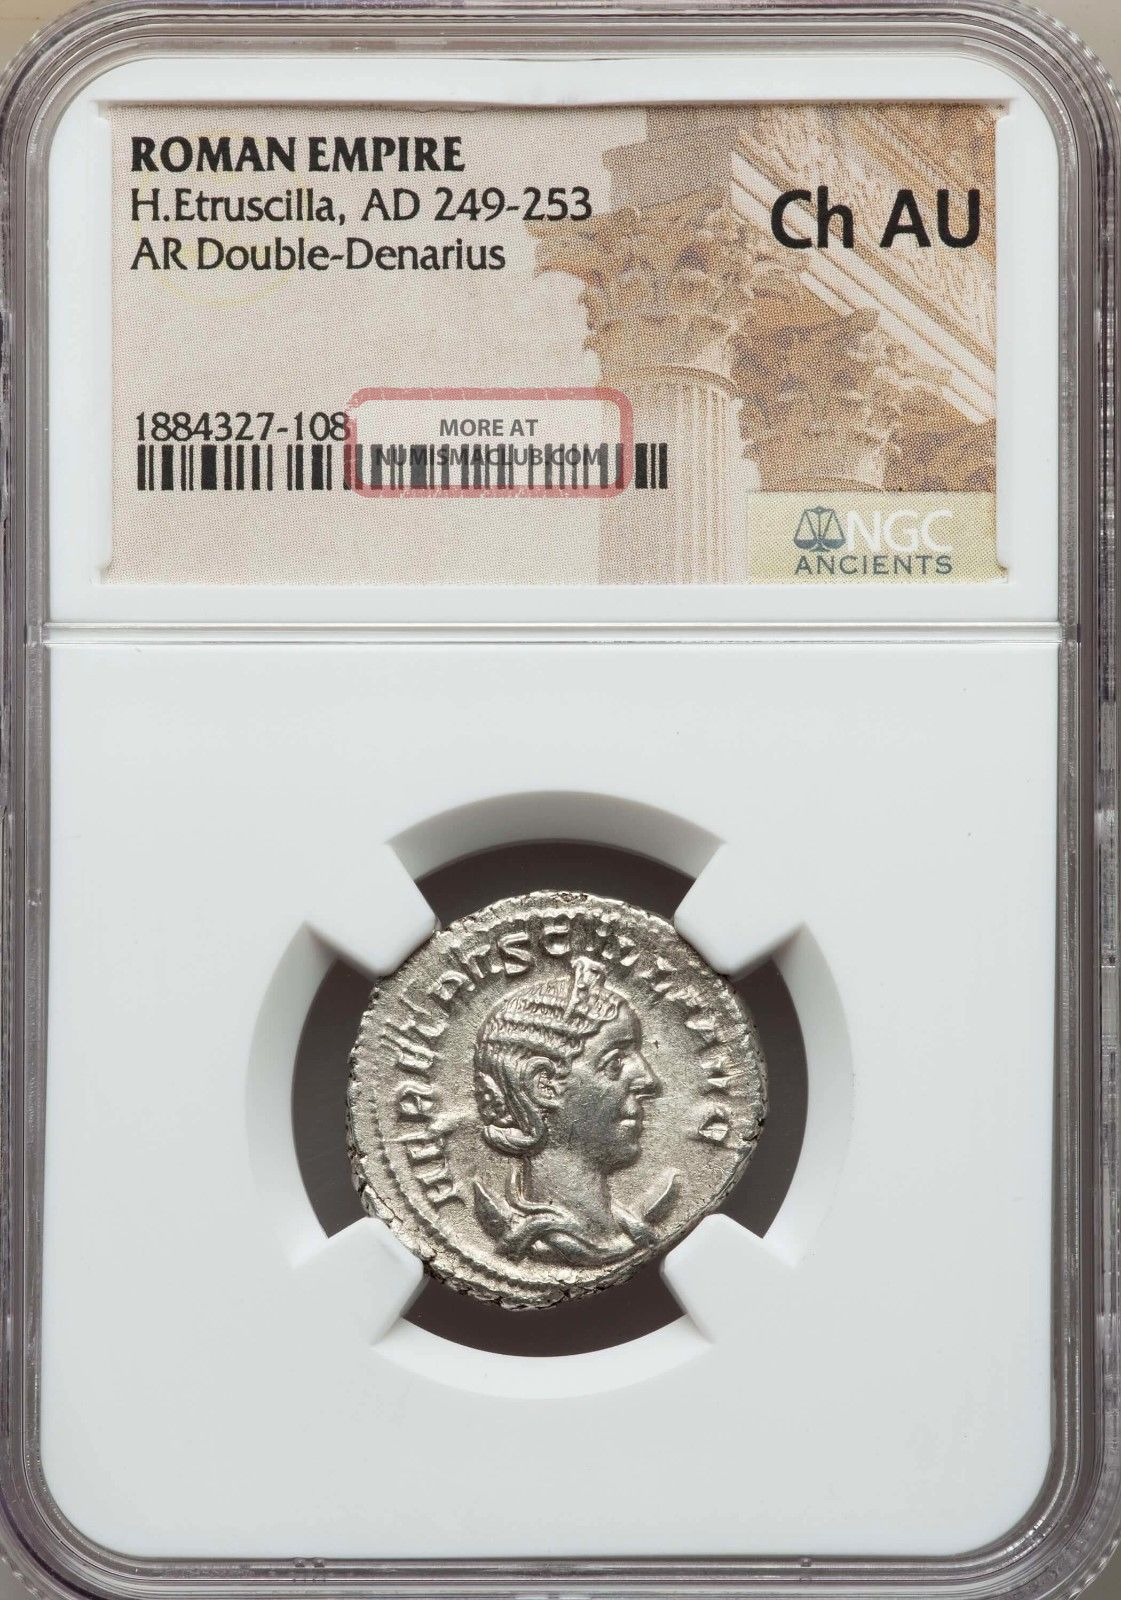 Herennia Etruscilla Ad 249 - 253 Bi Antoninianus Rome Ngc Choice Au Coins: Ancient photo